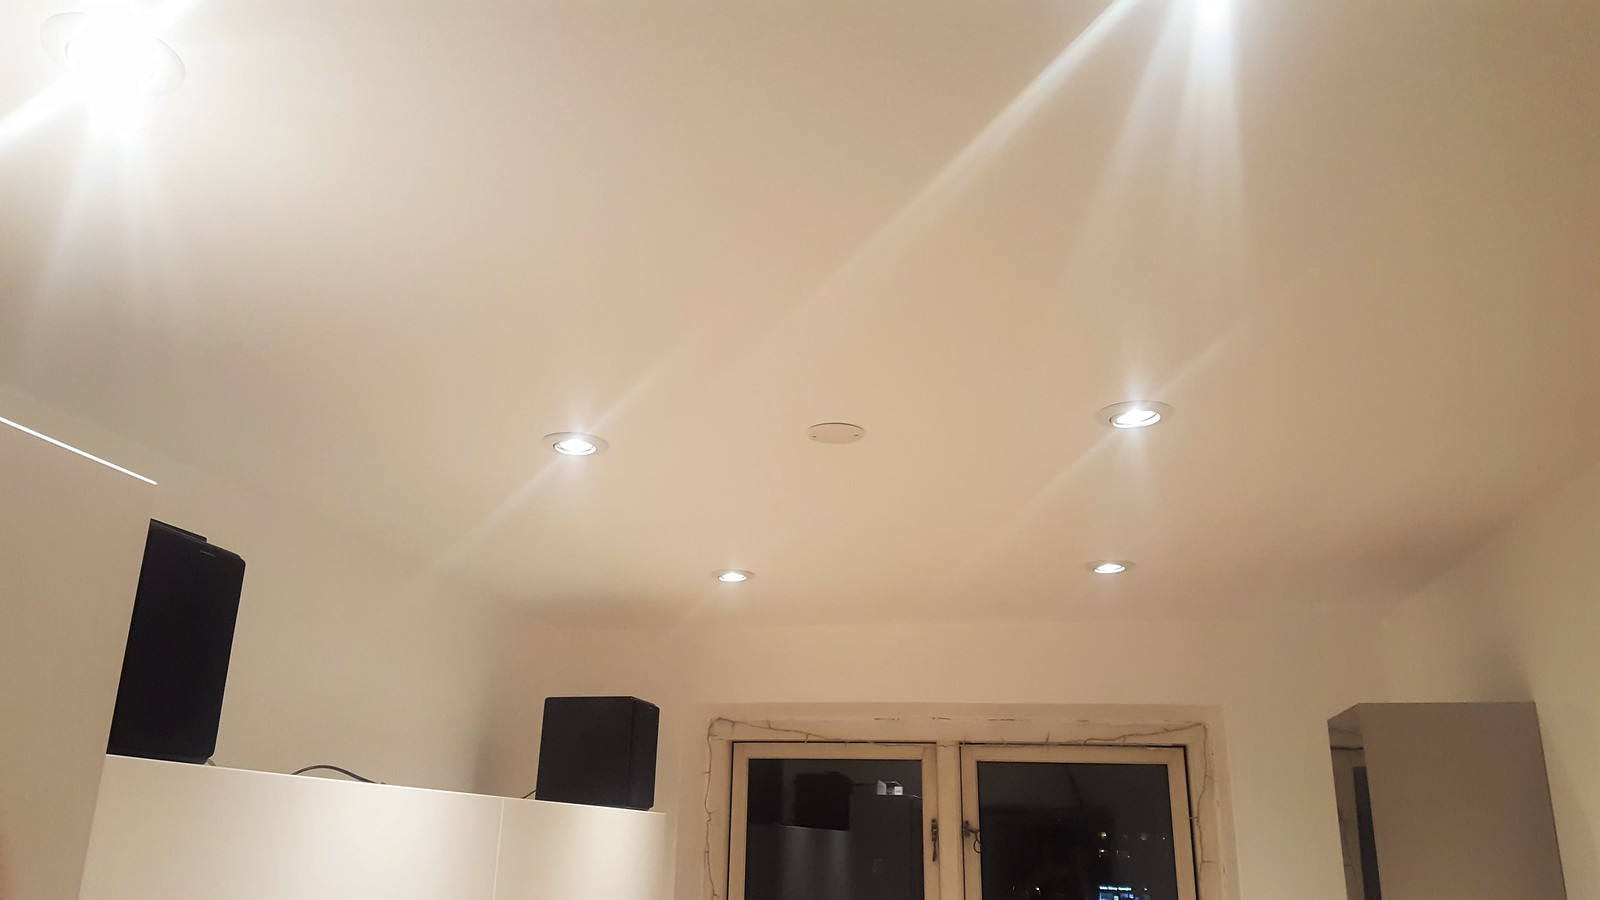 Phenomenal Guide Lower Ceiling And Install Led Downlights Nordic Food Living Wiring Cloud Pendufoxcilixyz